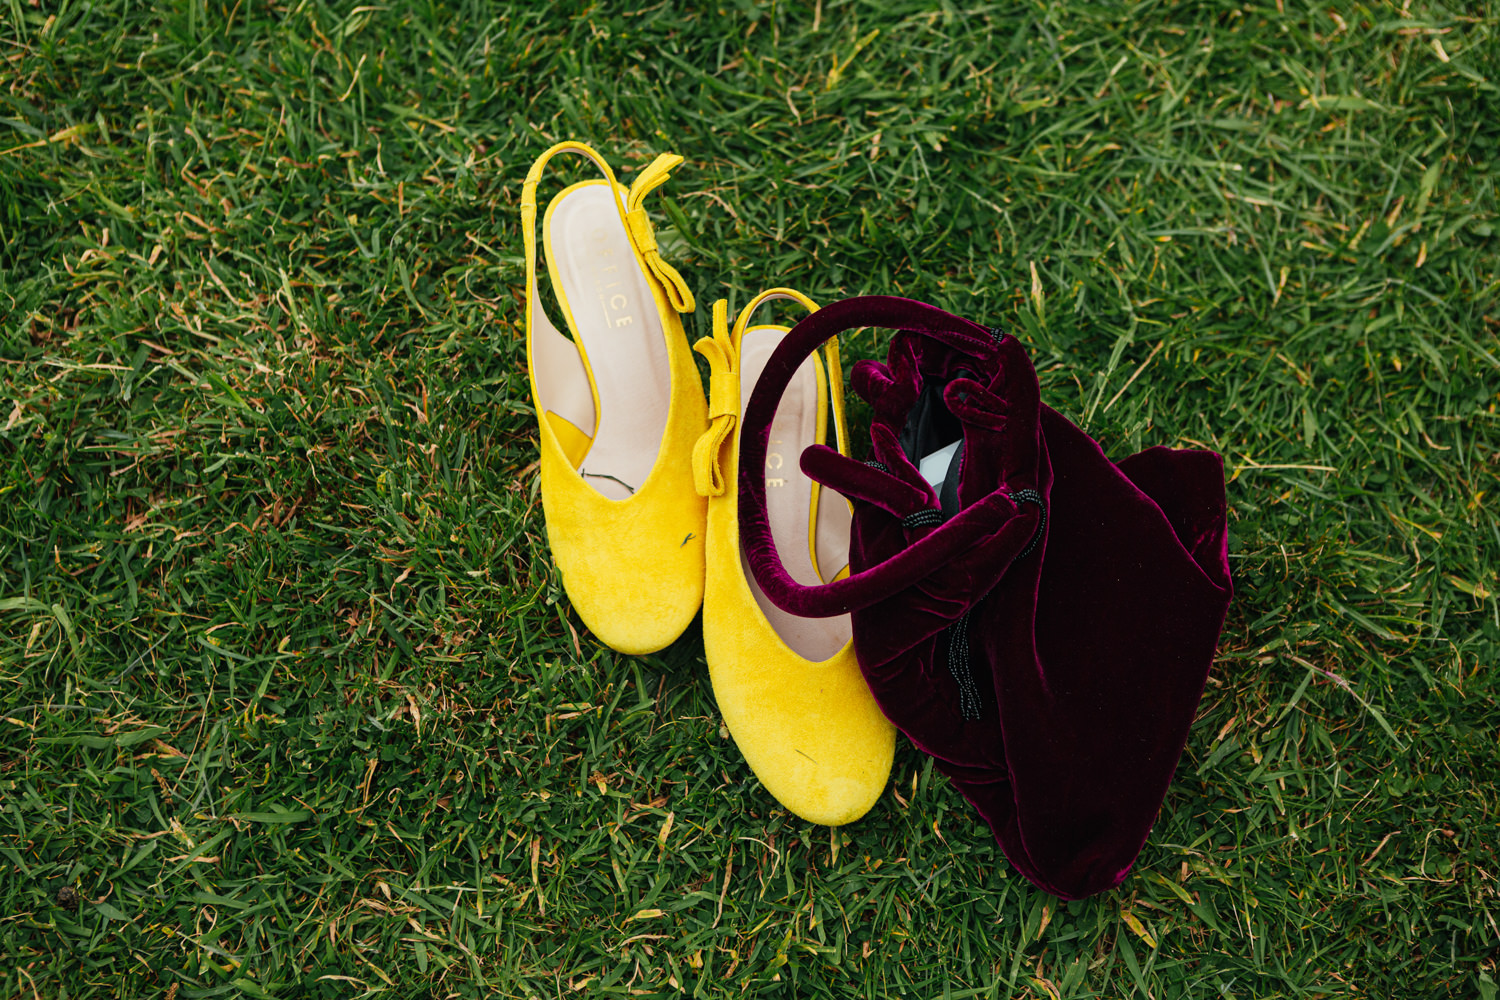 colourful bag and shoes on green grass